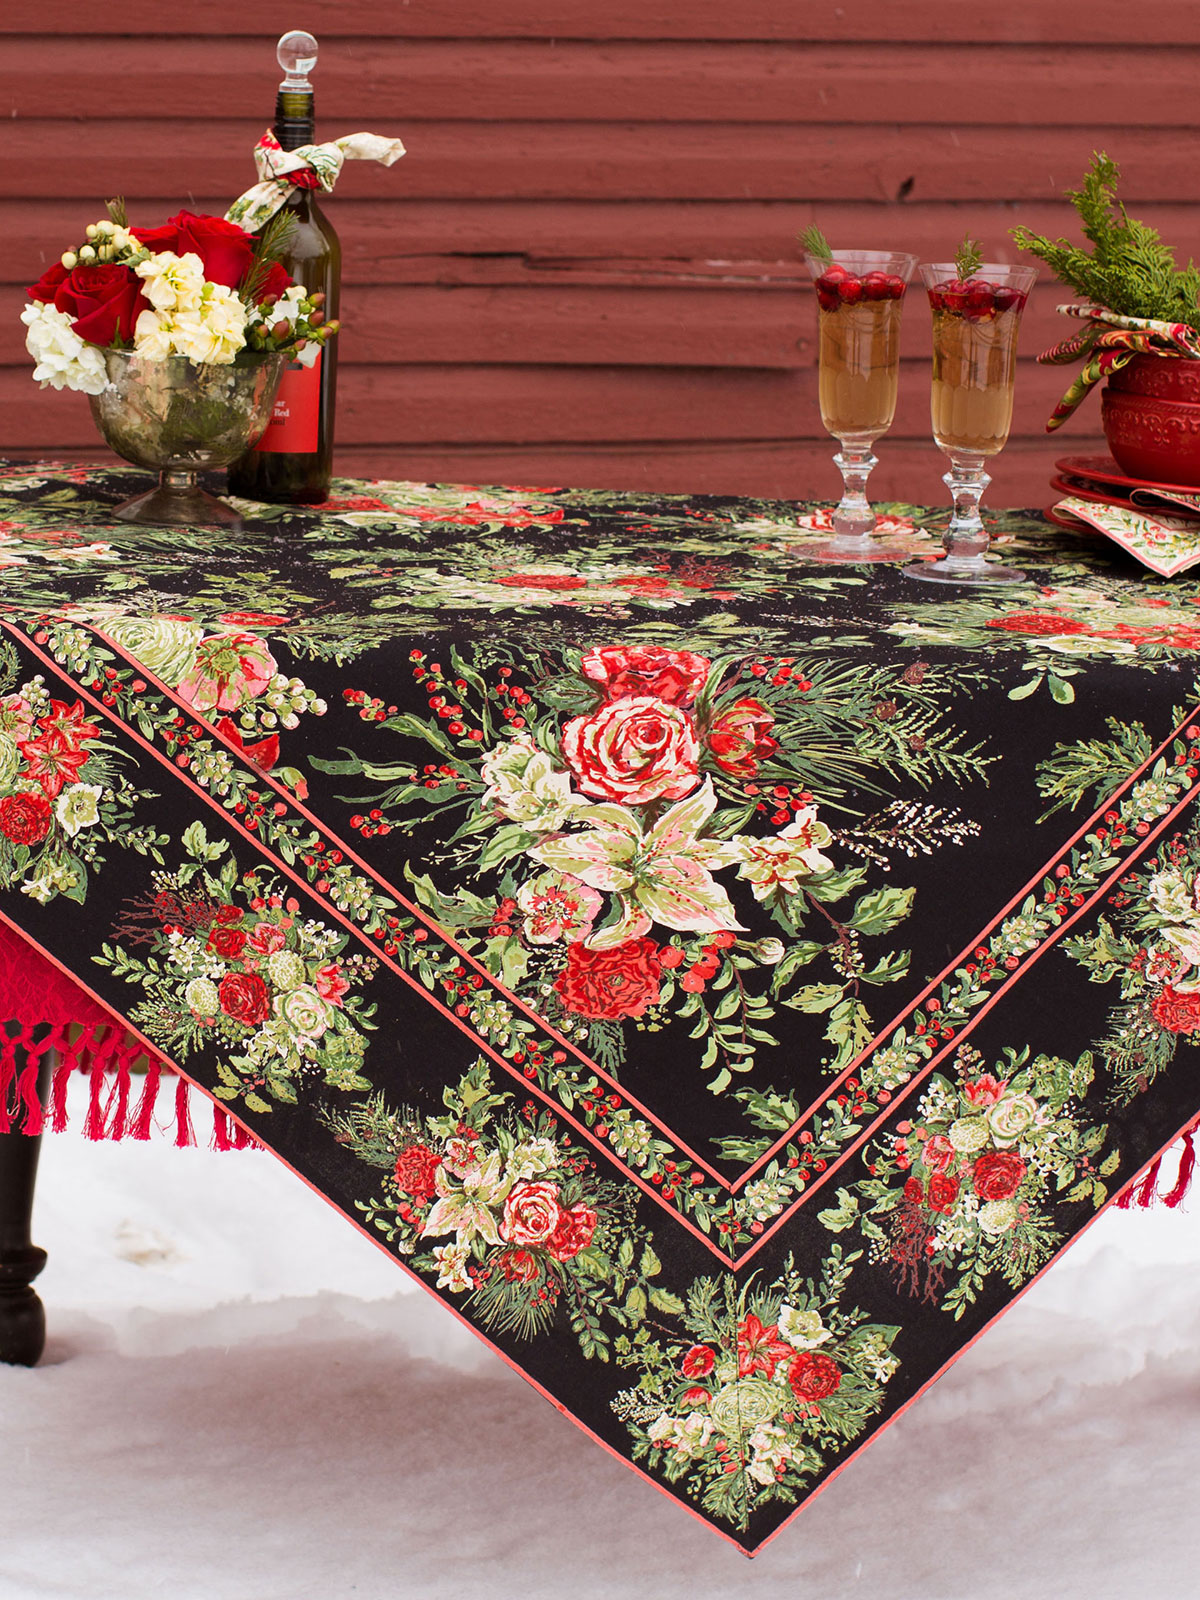 Merry Tablecloth   Antique | Your Home, Christmas Forever :Beautiful  Designs By April Cornell